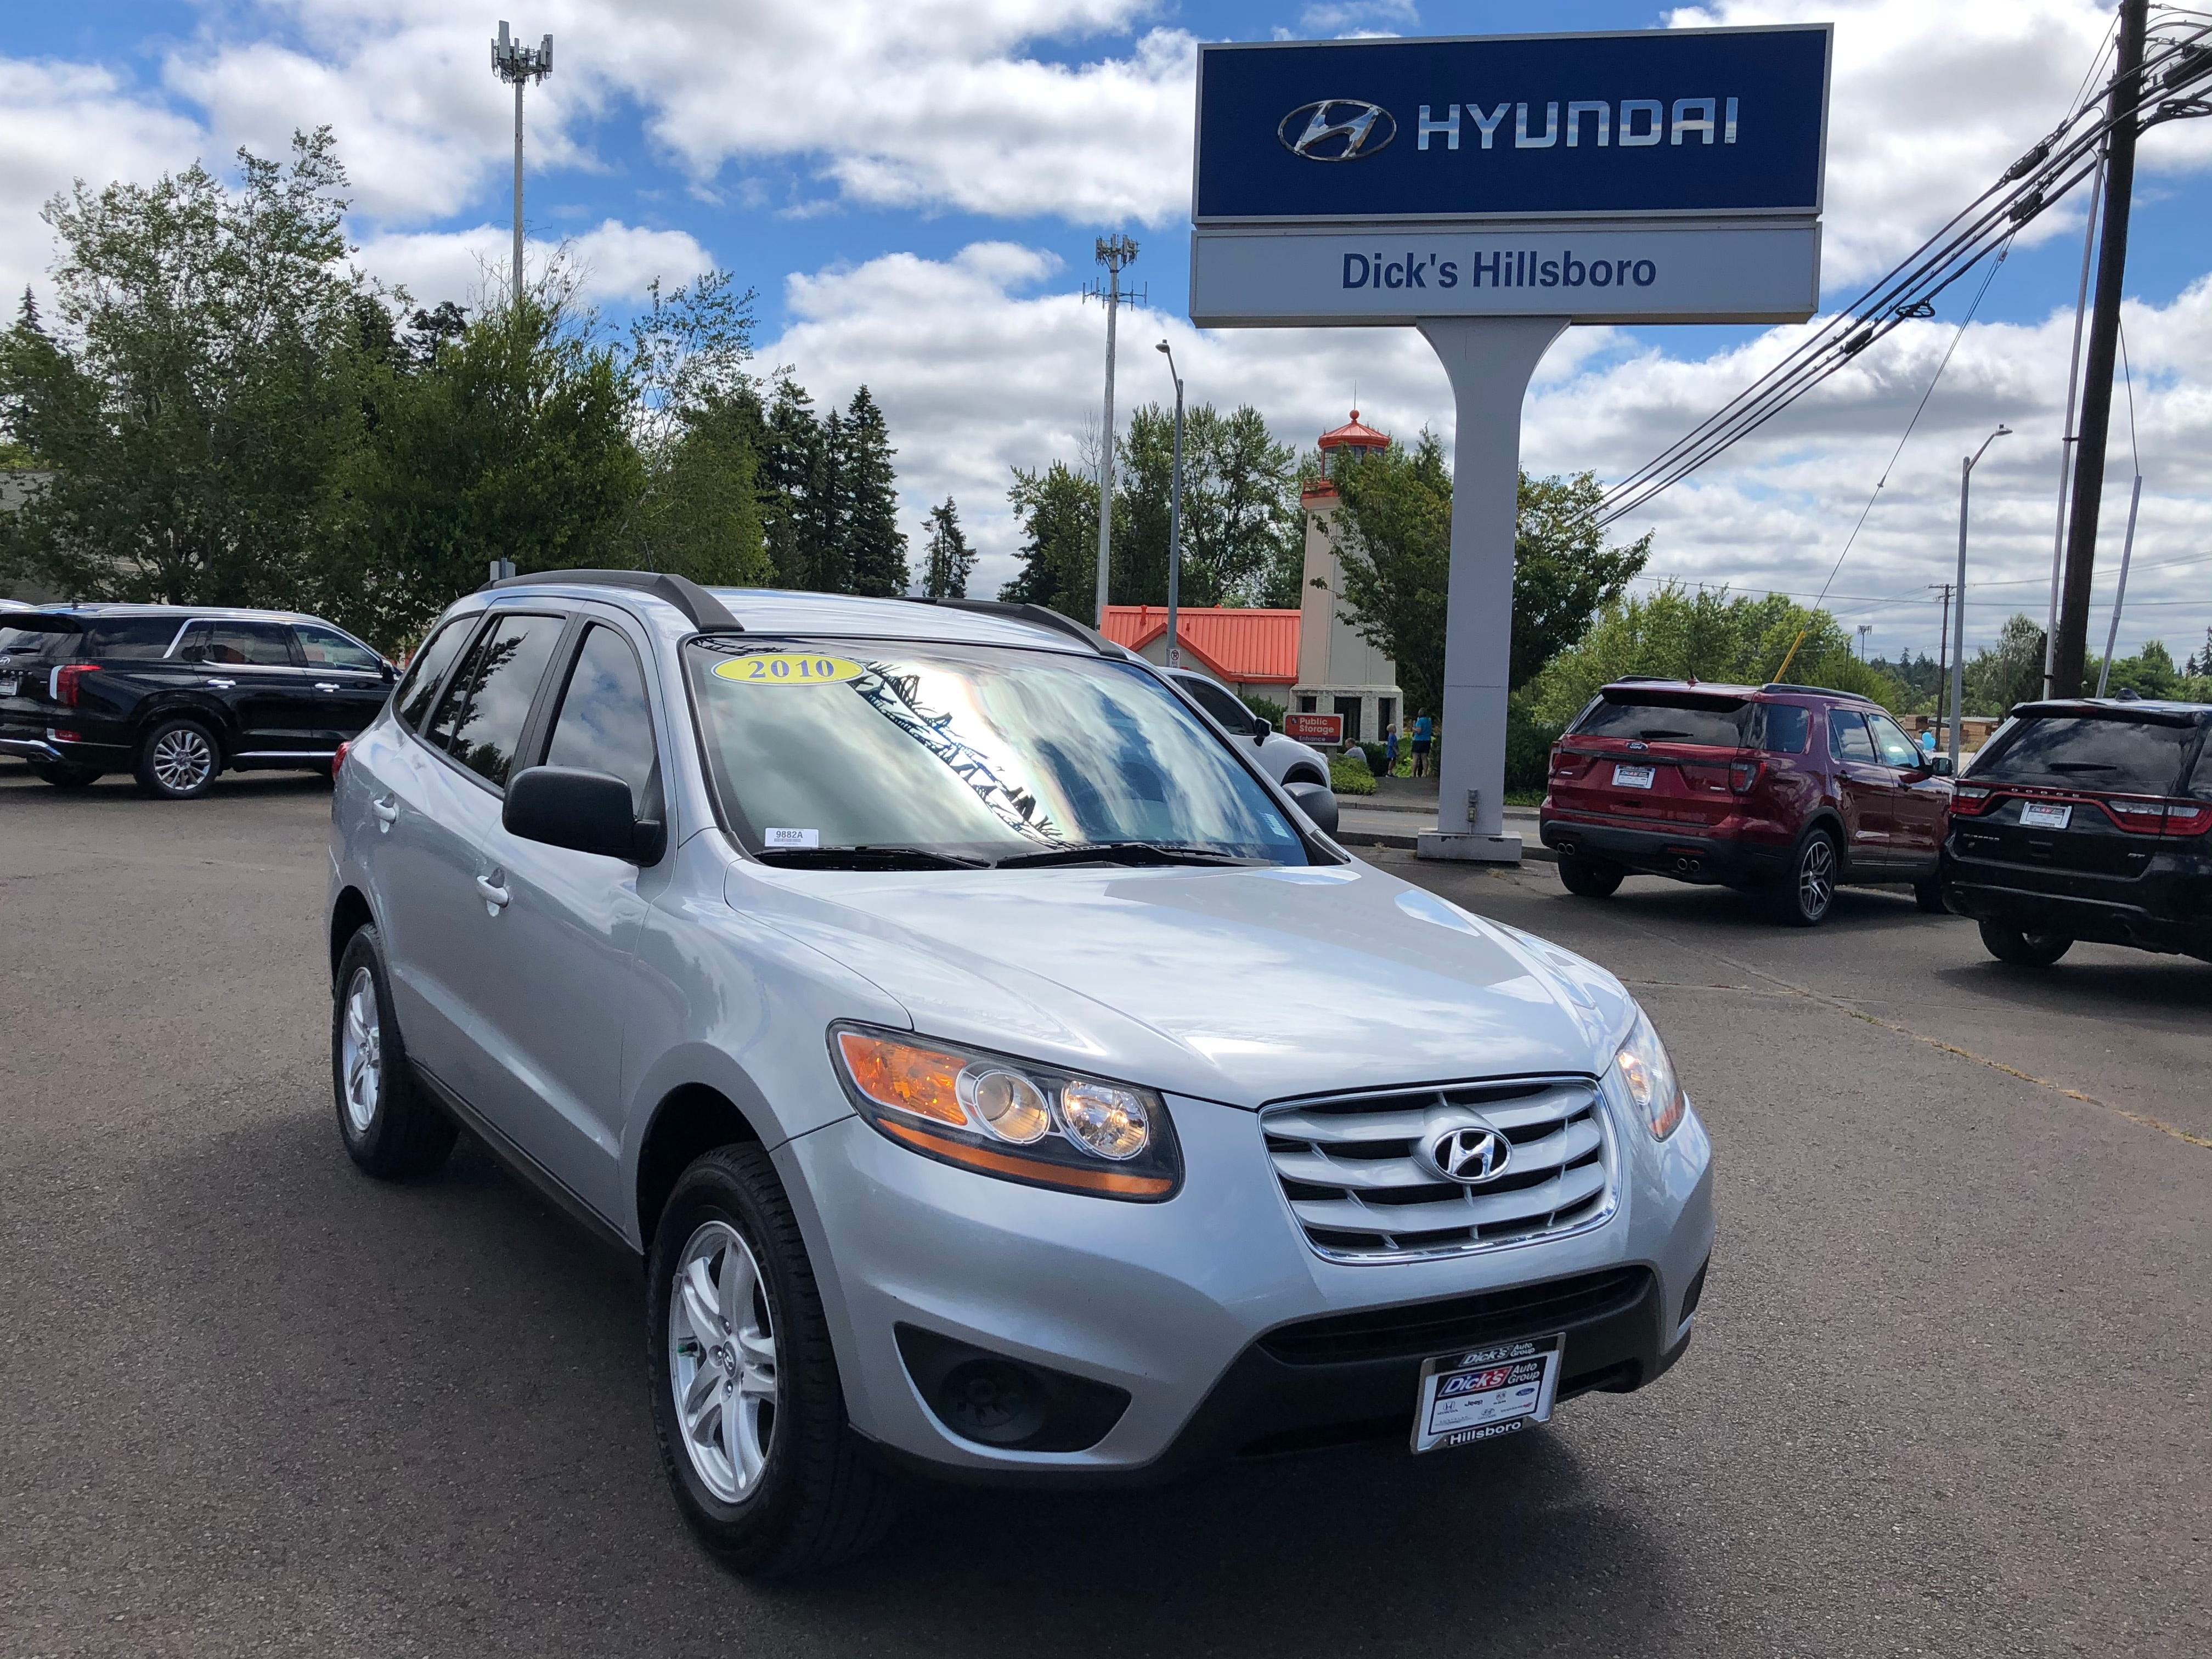 Pre Owned 2010 Hyundai Santa Fe Gls Suv In Hillsboro 9882a Dick S Country Chrysler Jeep Dodge